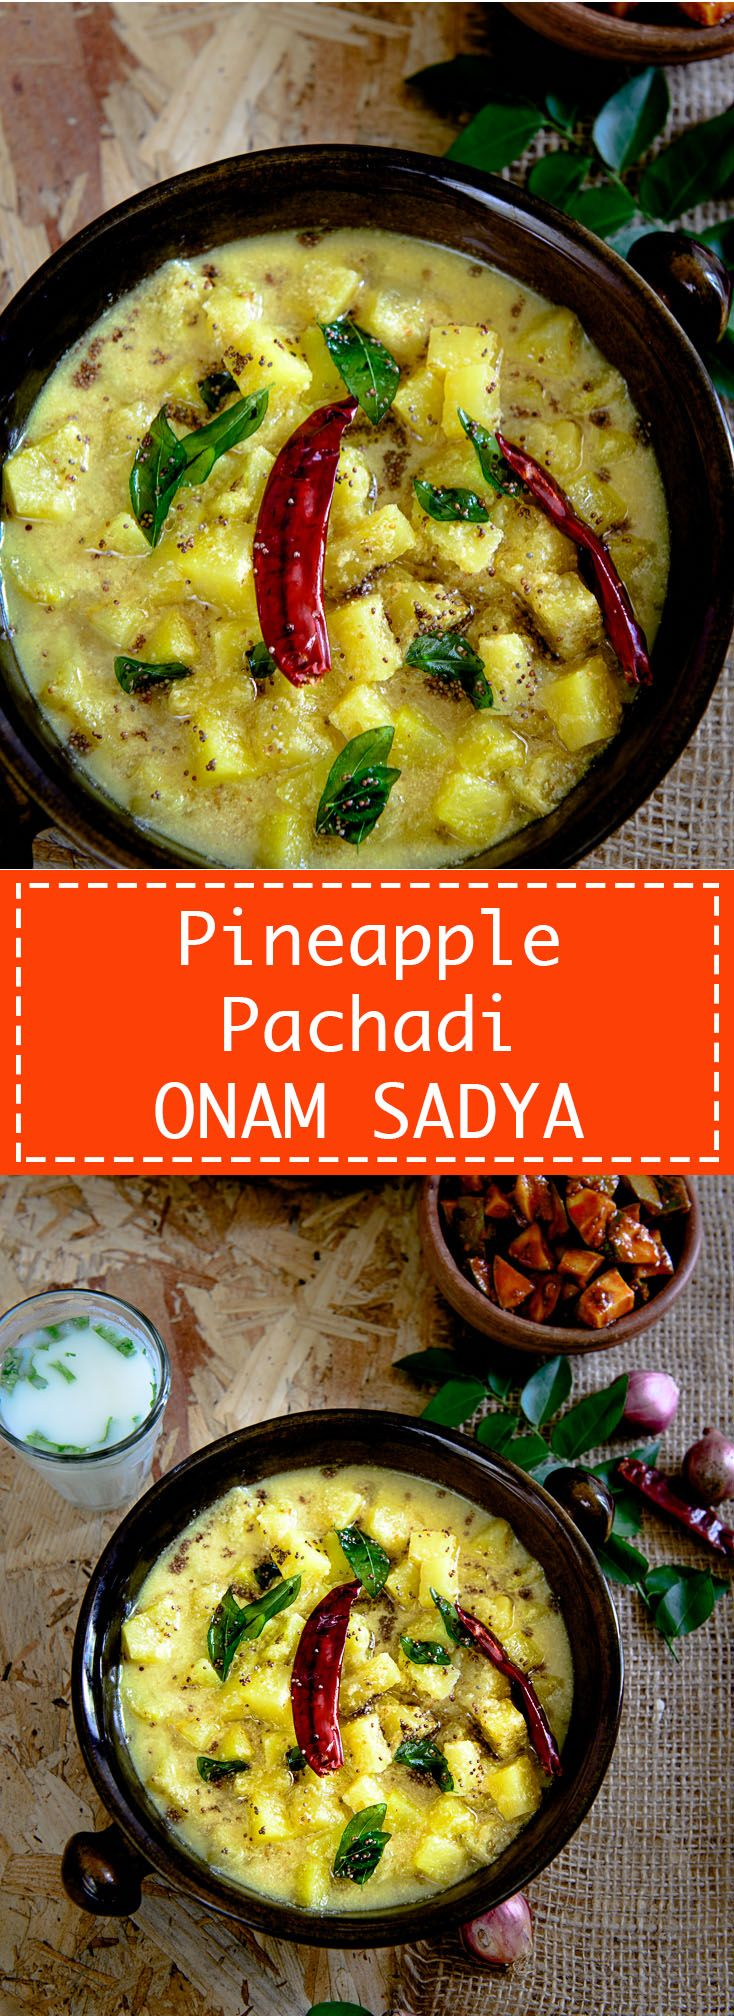 Pineapple Pachadi Kerala style Pineapple chutney to serve for Onam Sadya. Food photography and styling by Neha Mathur.